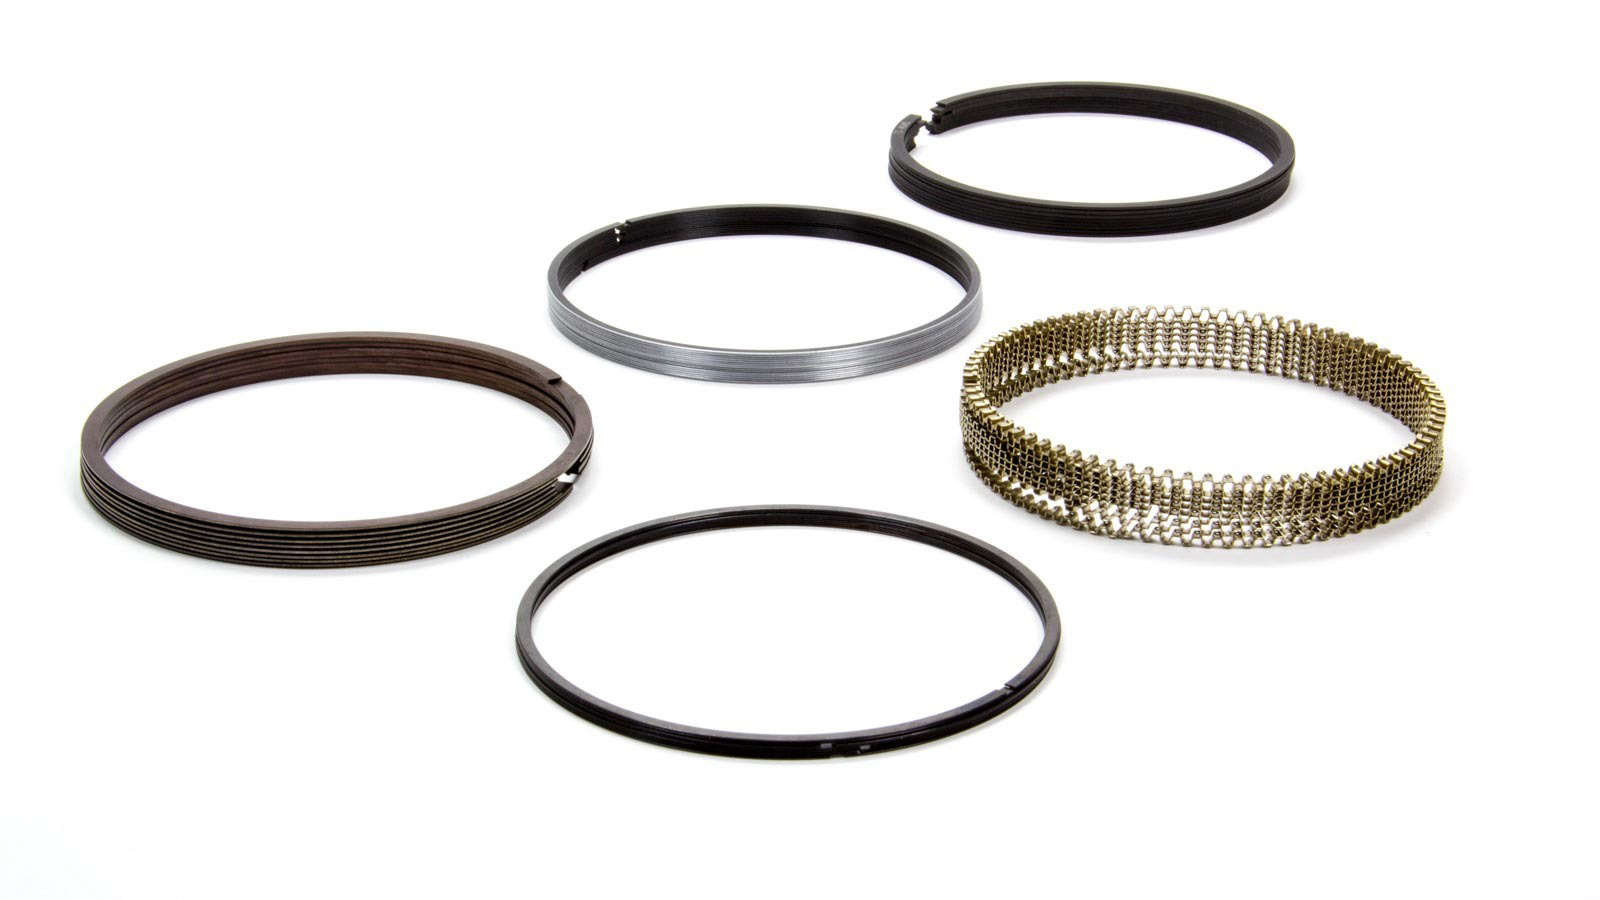 Total Seal MS9010-45 Piston Rings, Maxseal, Gapless, 4.165 in Bore, File Fit, 0.043 in x 0.043 in x 3.0 mm Thick, Low Tension, Iron, 8 Cylinder, Kit